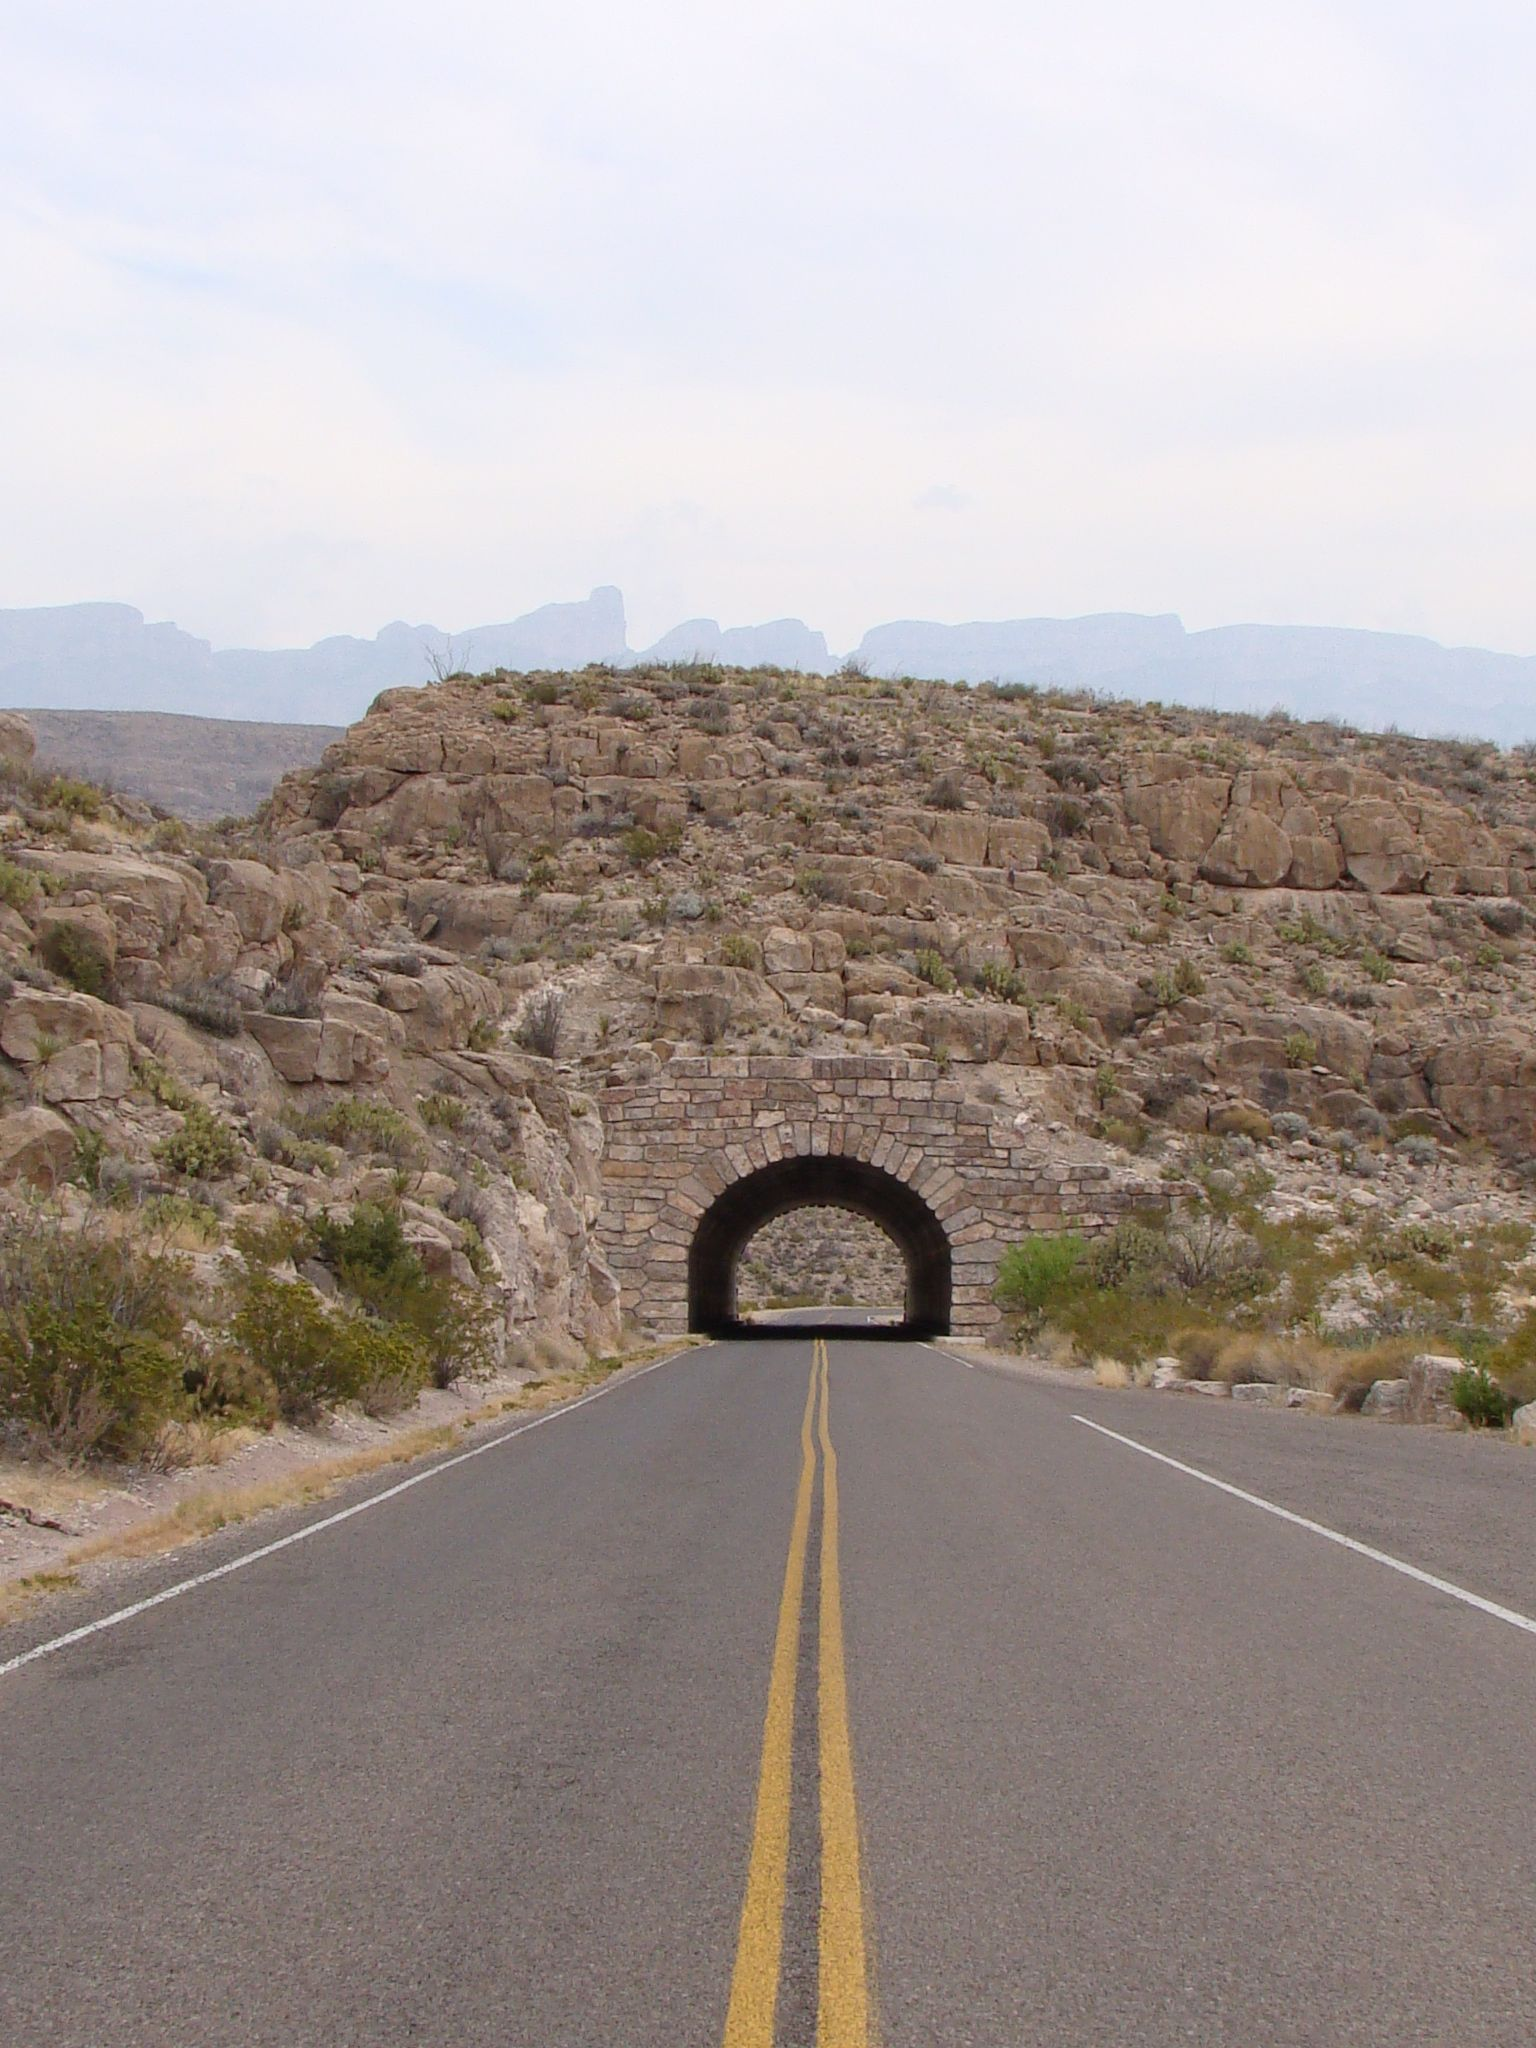 Camino Del Oro Parking The Rio Grande Tunnel In Big Bend National Park Was Built In 1959